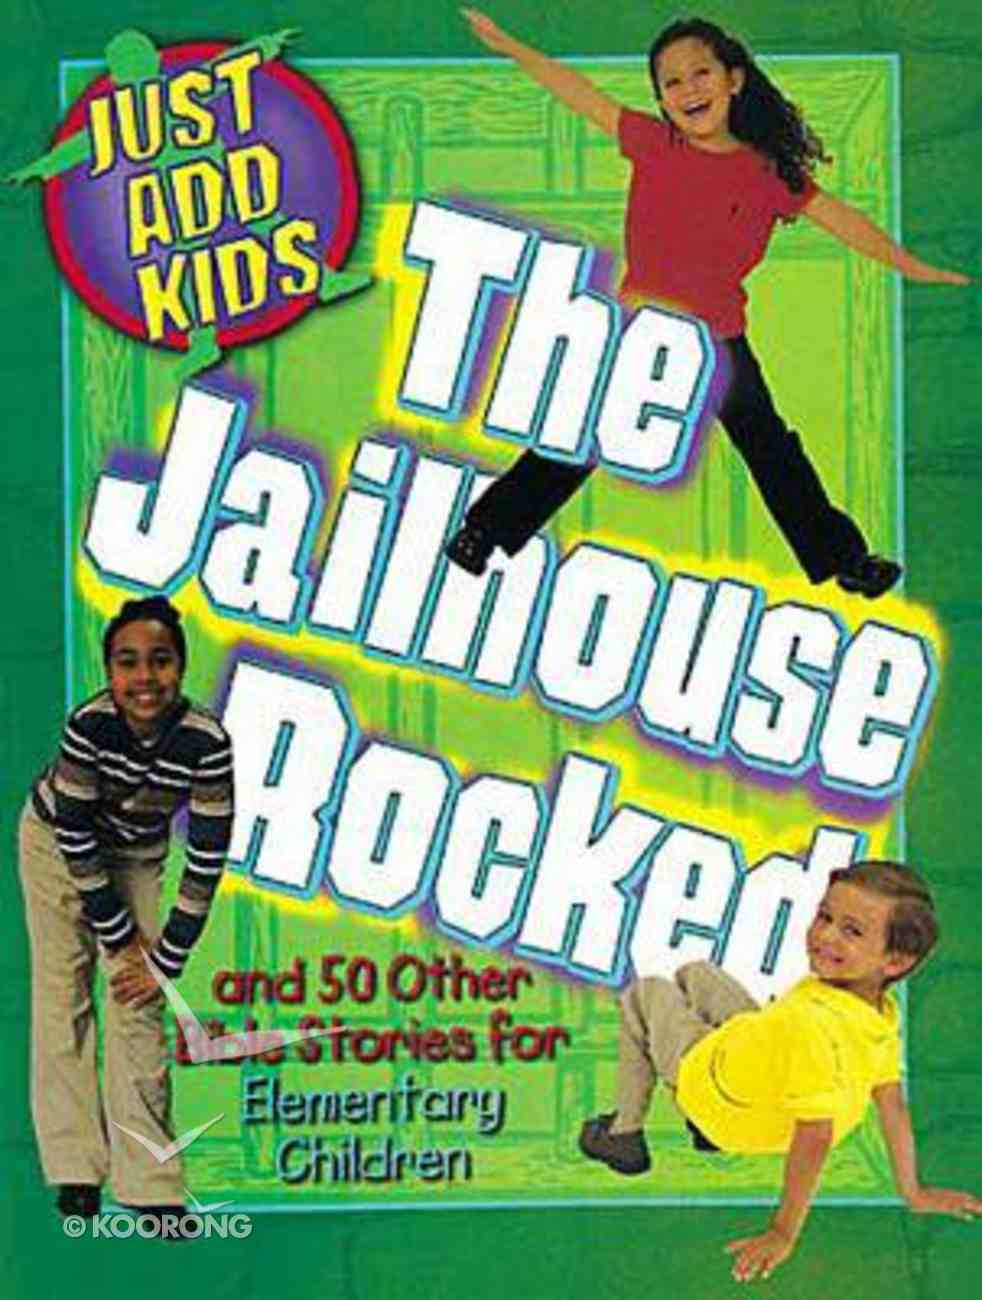 Just Add Kids: The Jailhouse Rocked Paperback